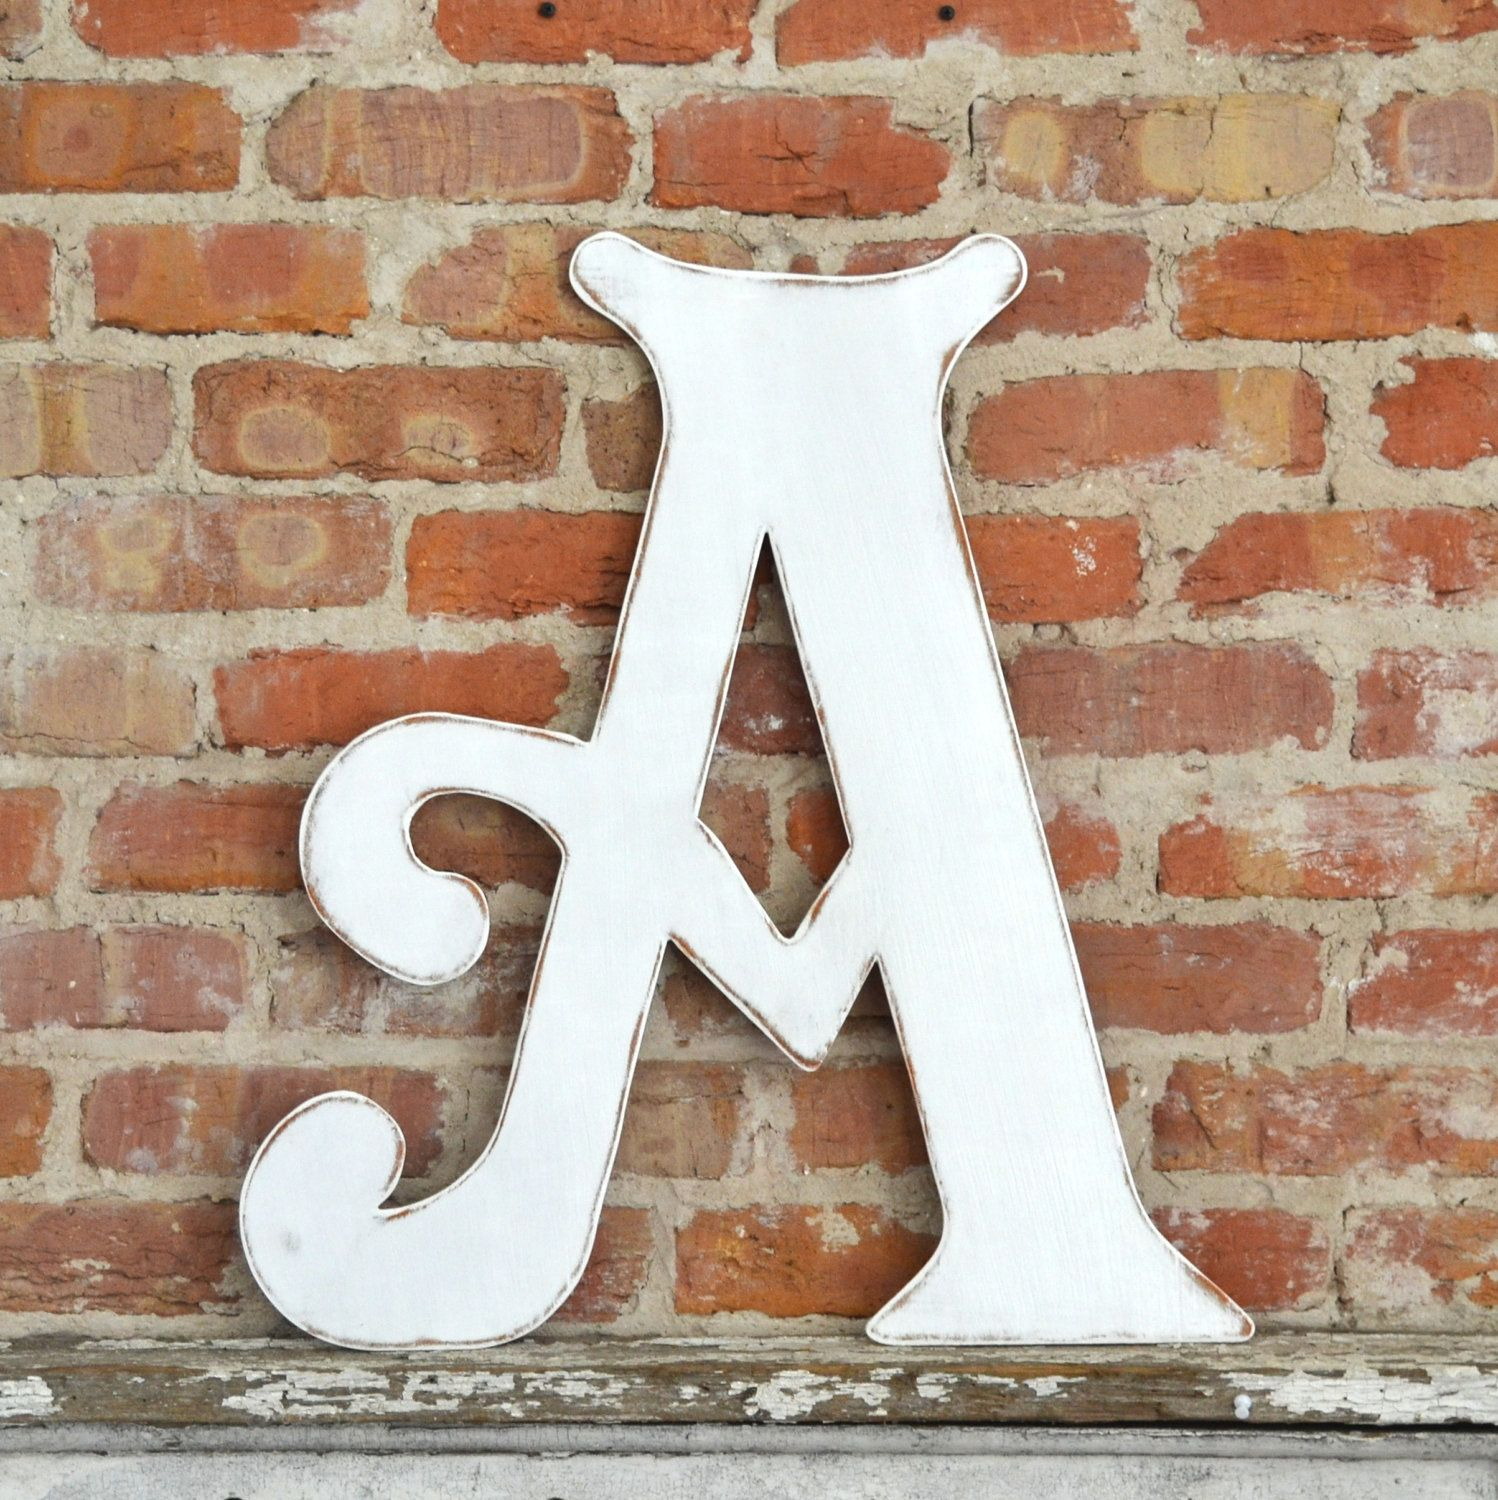 24 Wooden Letter A Distressed White Elegant Font All Letters Colors Available Wooden Letters Decorative Letters Letter Wall Decor